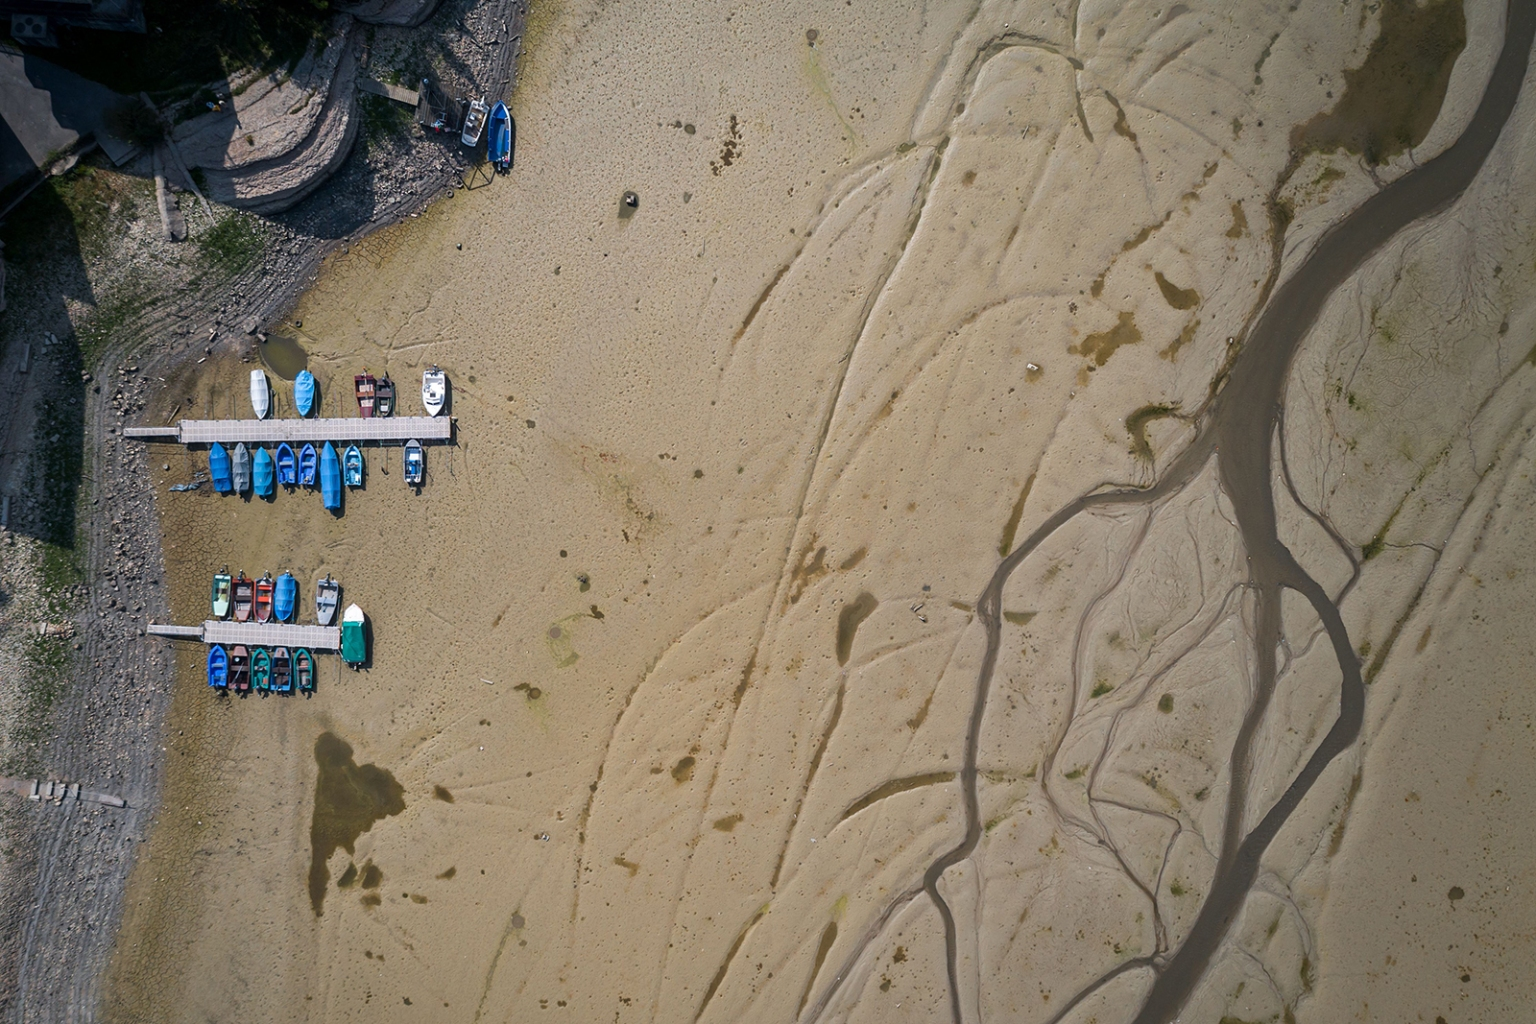 Boats sit aground in the dried bed of the Brenet Lake section of the Doubs river, a natural border beetwen eastern France and western Switzerland, on Sept. 20. Upstream, the river dried up due to geological faults that empty the river, accented by a rainless summer. FABRICE COFFRINI/AFP/Getty Images